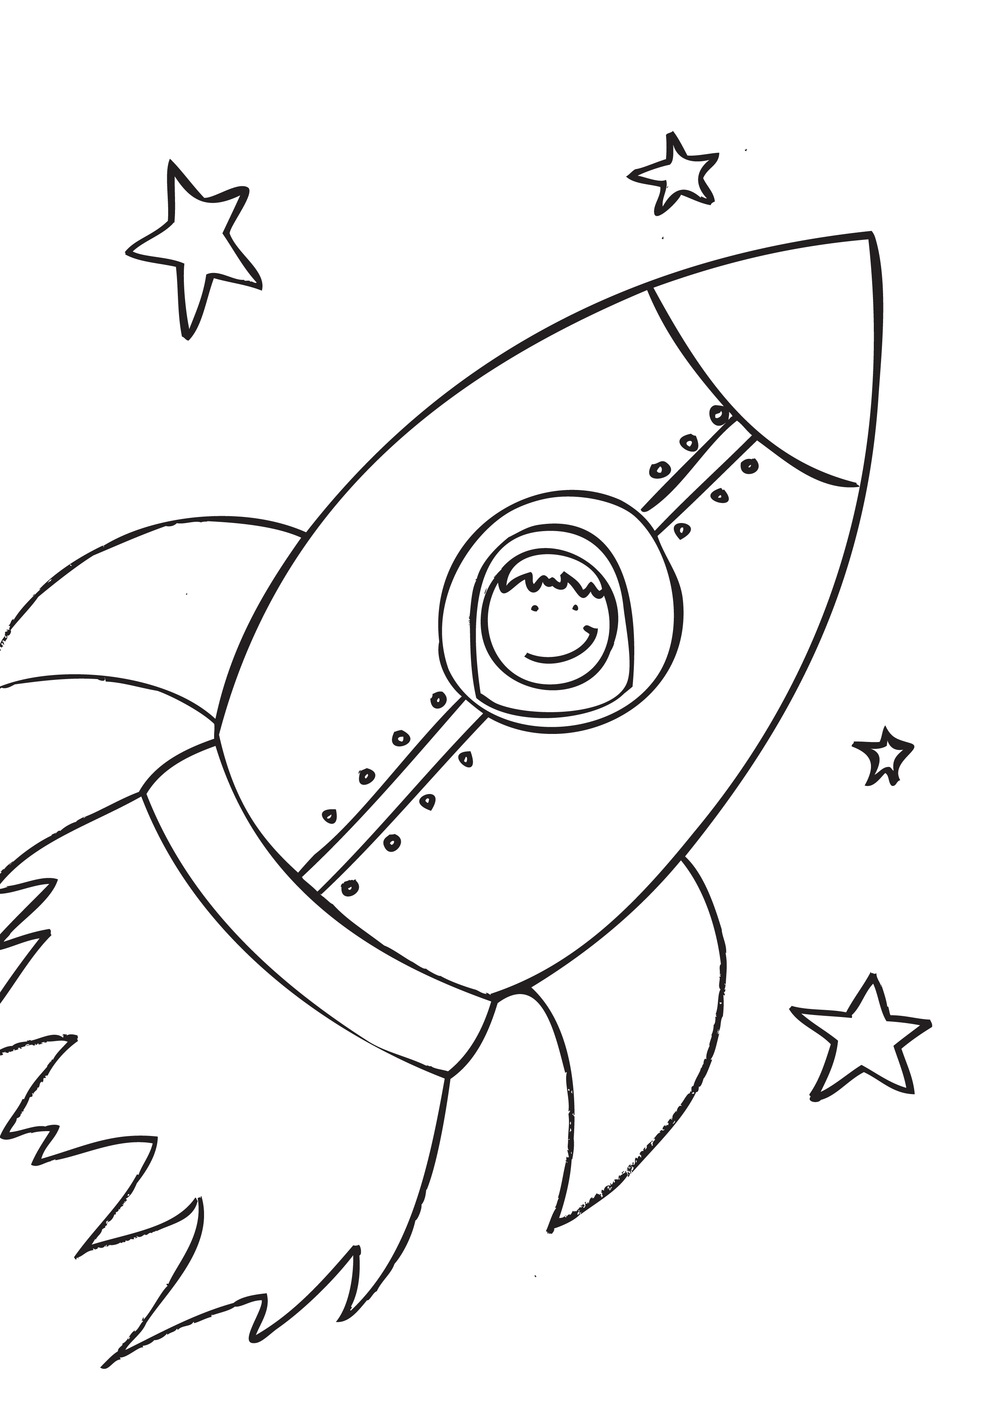 Free Printable Rocket Ship Coloring Pages For Kids